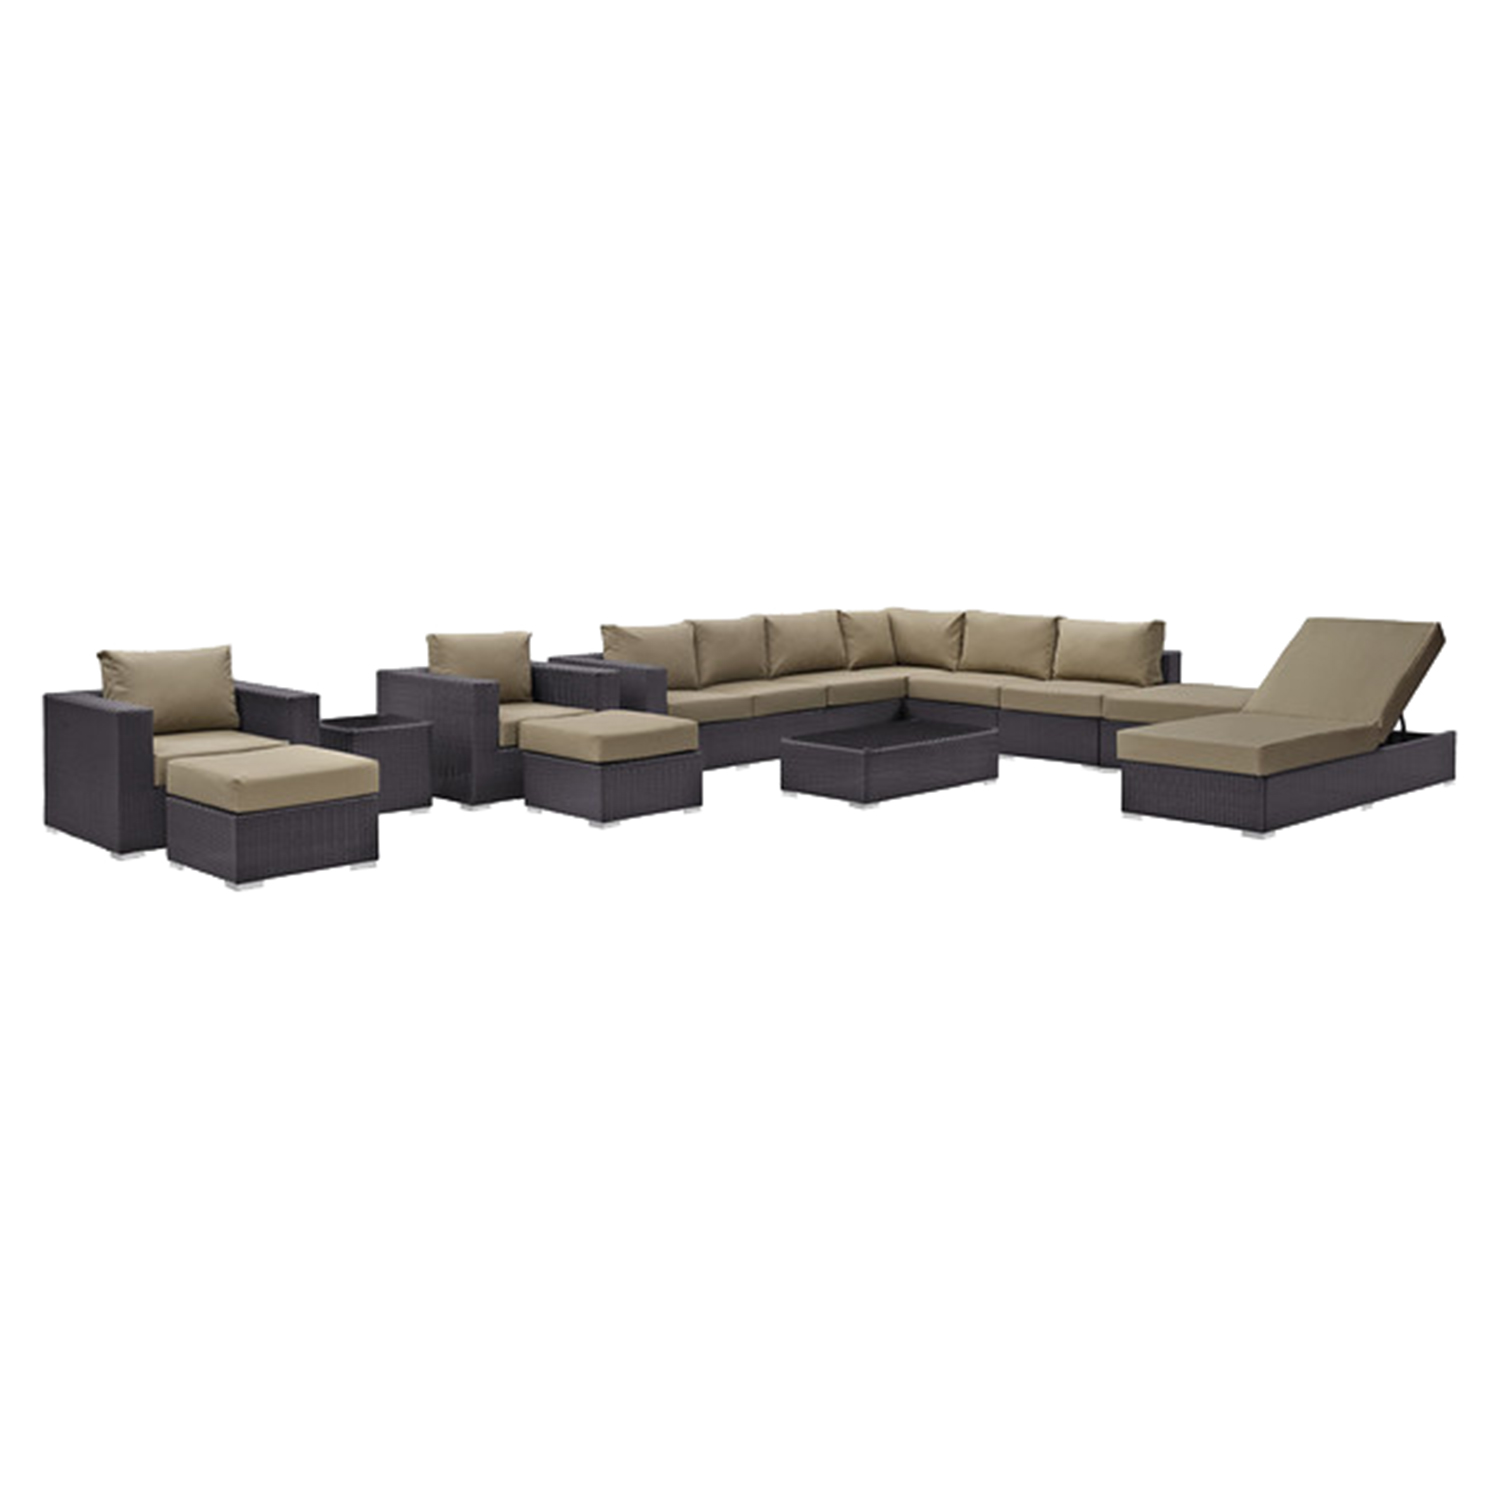 Convene 12 Pieces Outdoor Patio Sectional Set - EEI-2165-EXP-SET